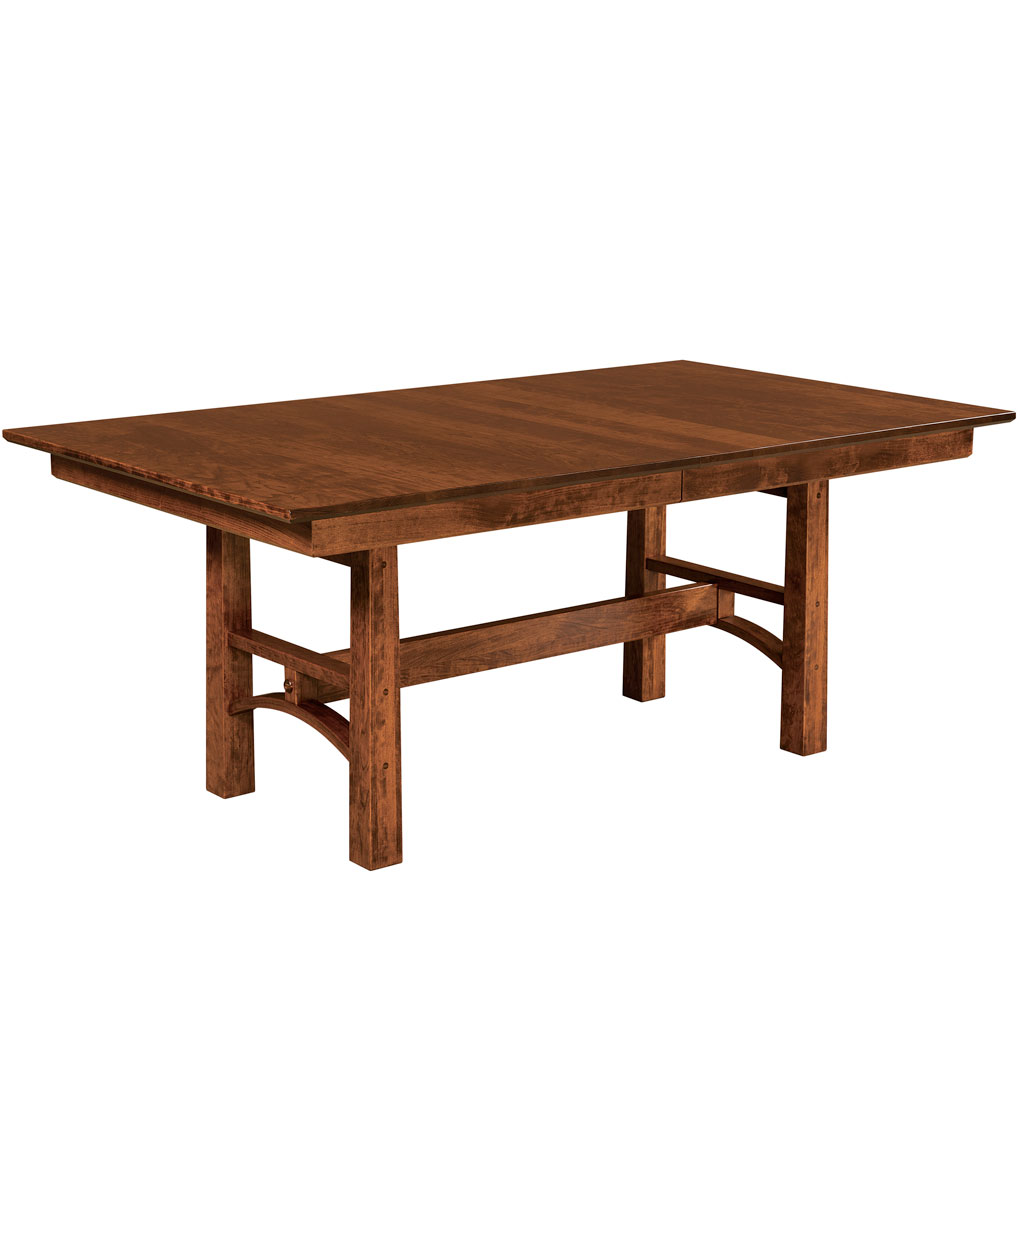 Bridgeport Trestle Table Amish Direct Furniture